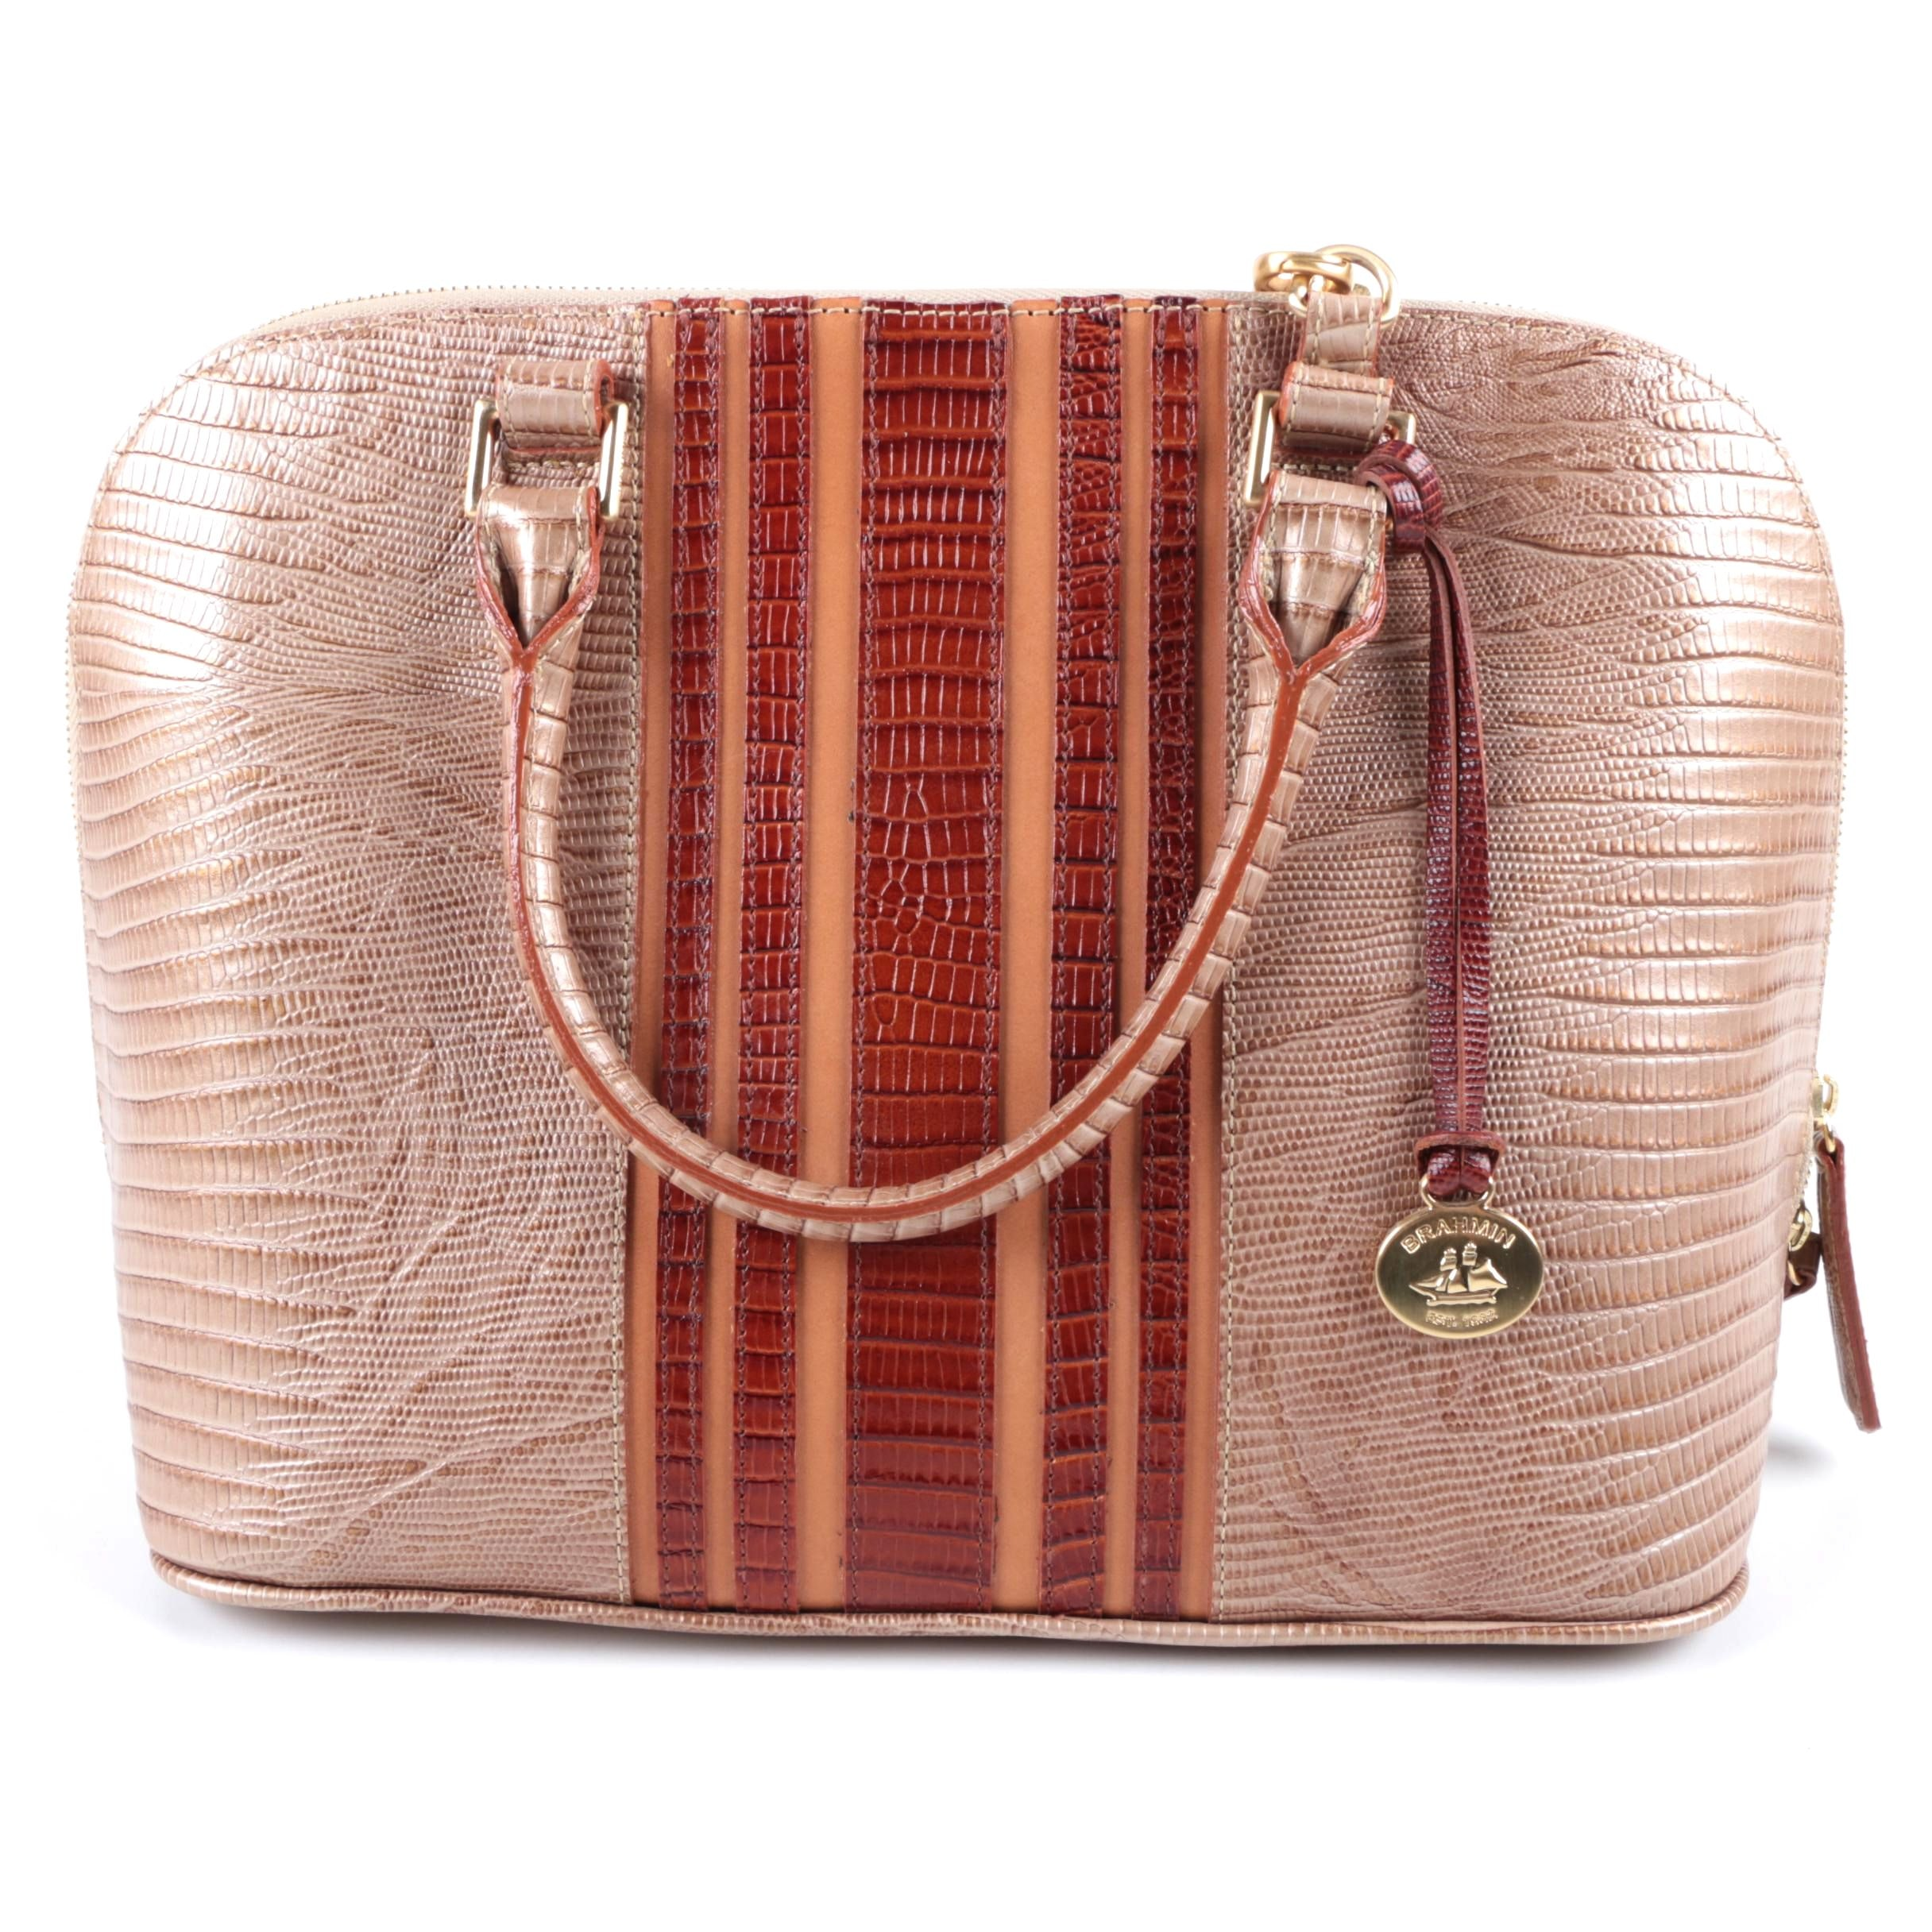 Brahmin Crocodile and Lizard Embossed Leather Convertible Satchel